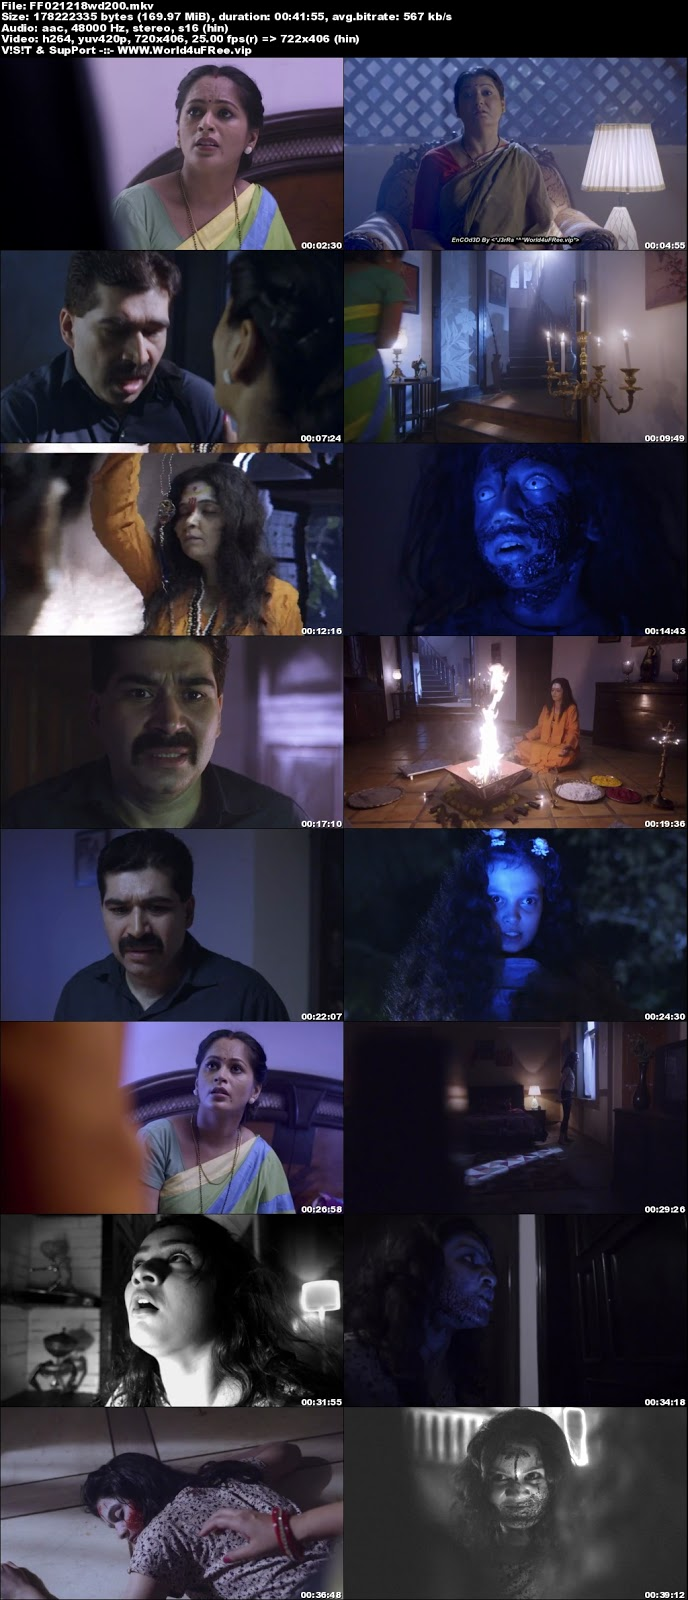 Fear Files 02 December 2018 WEBRip 480p 150Mb x264world4ufree.fun tv show Fear Files hindi tv showFear Files Season 1 Zee tv show compressed small size free download or watch online at world4ufree.fun